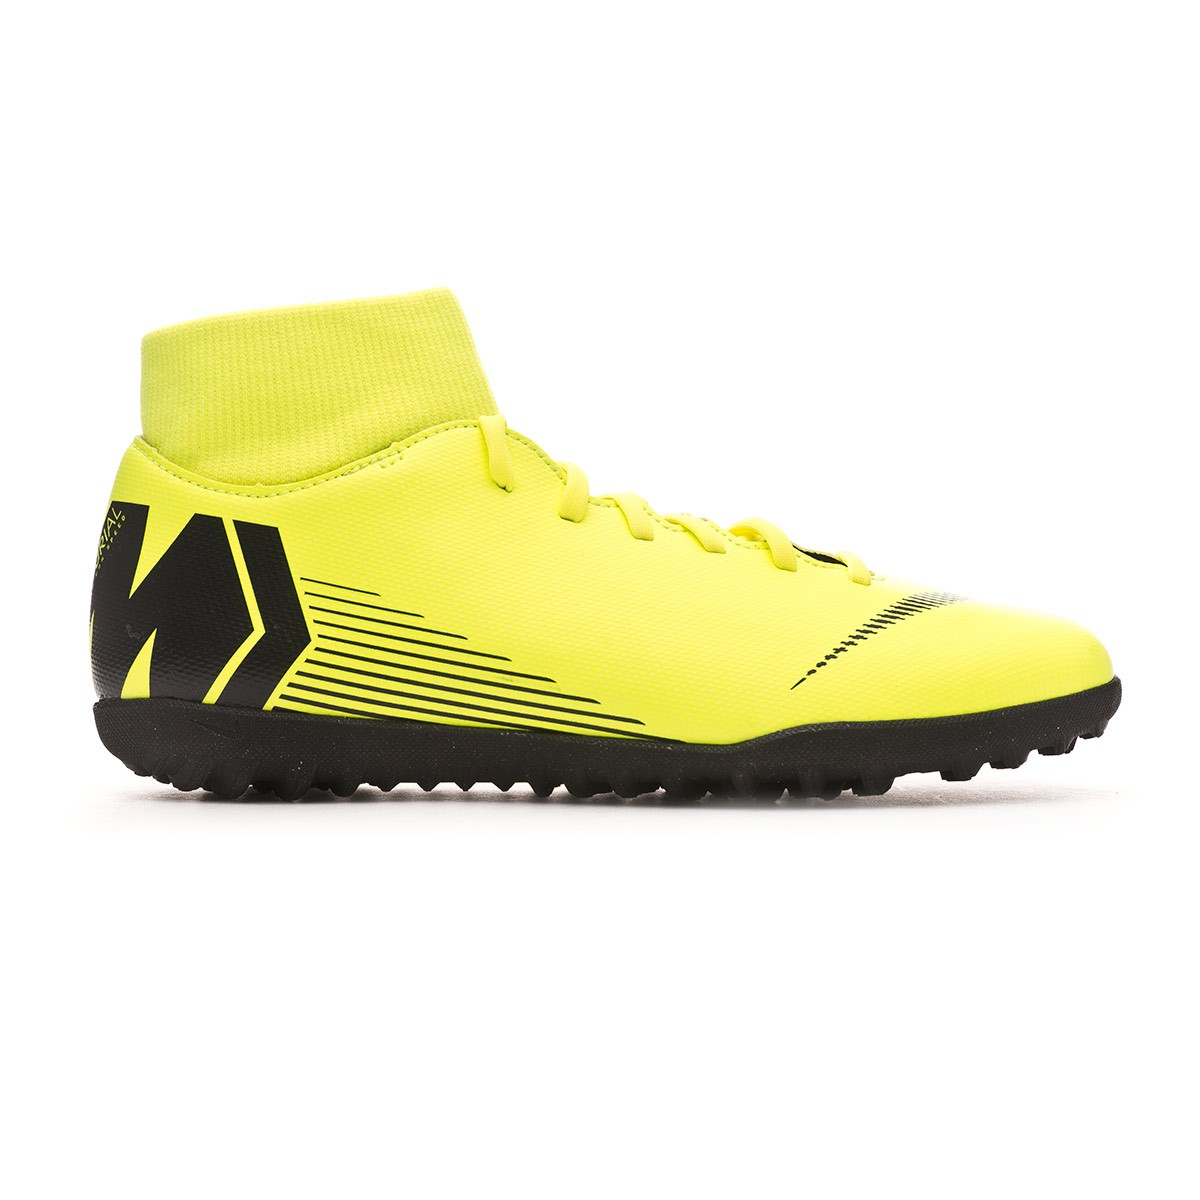 61061b7af Football Boot Nike Mercurial SuperflyX VI Club Turf Volt-Black - Football  store Fútbol Emotion